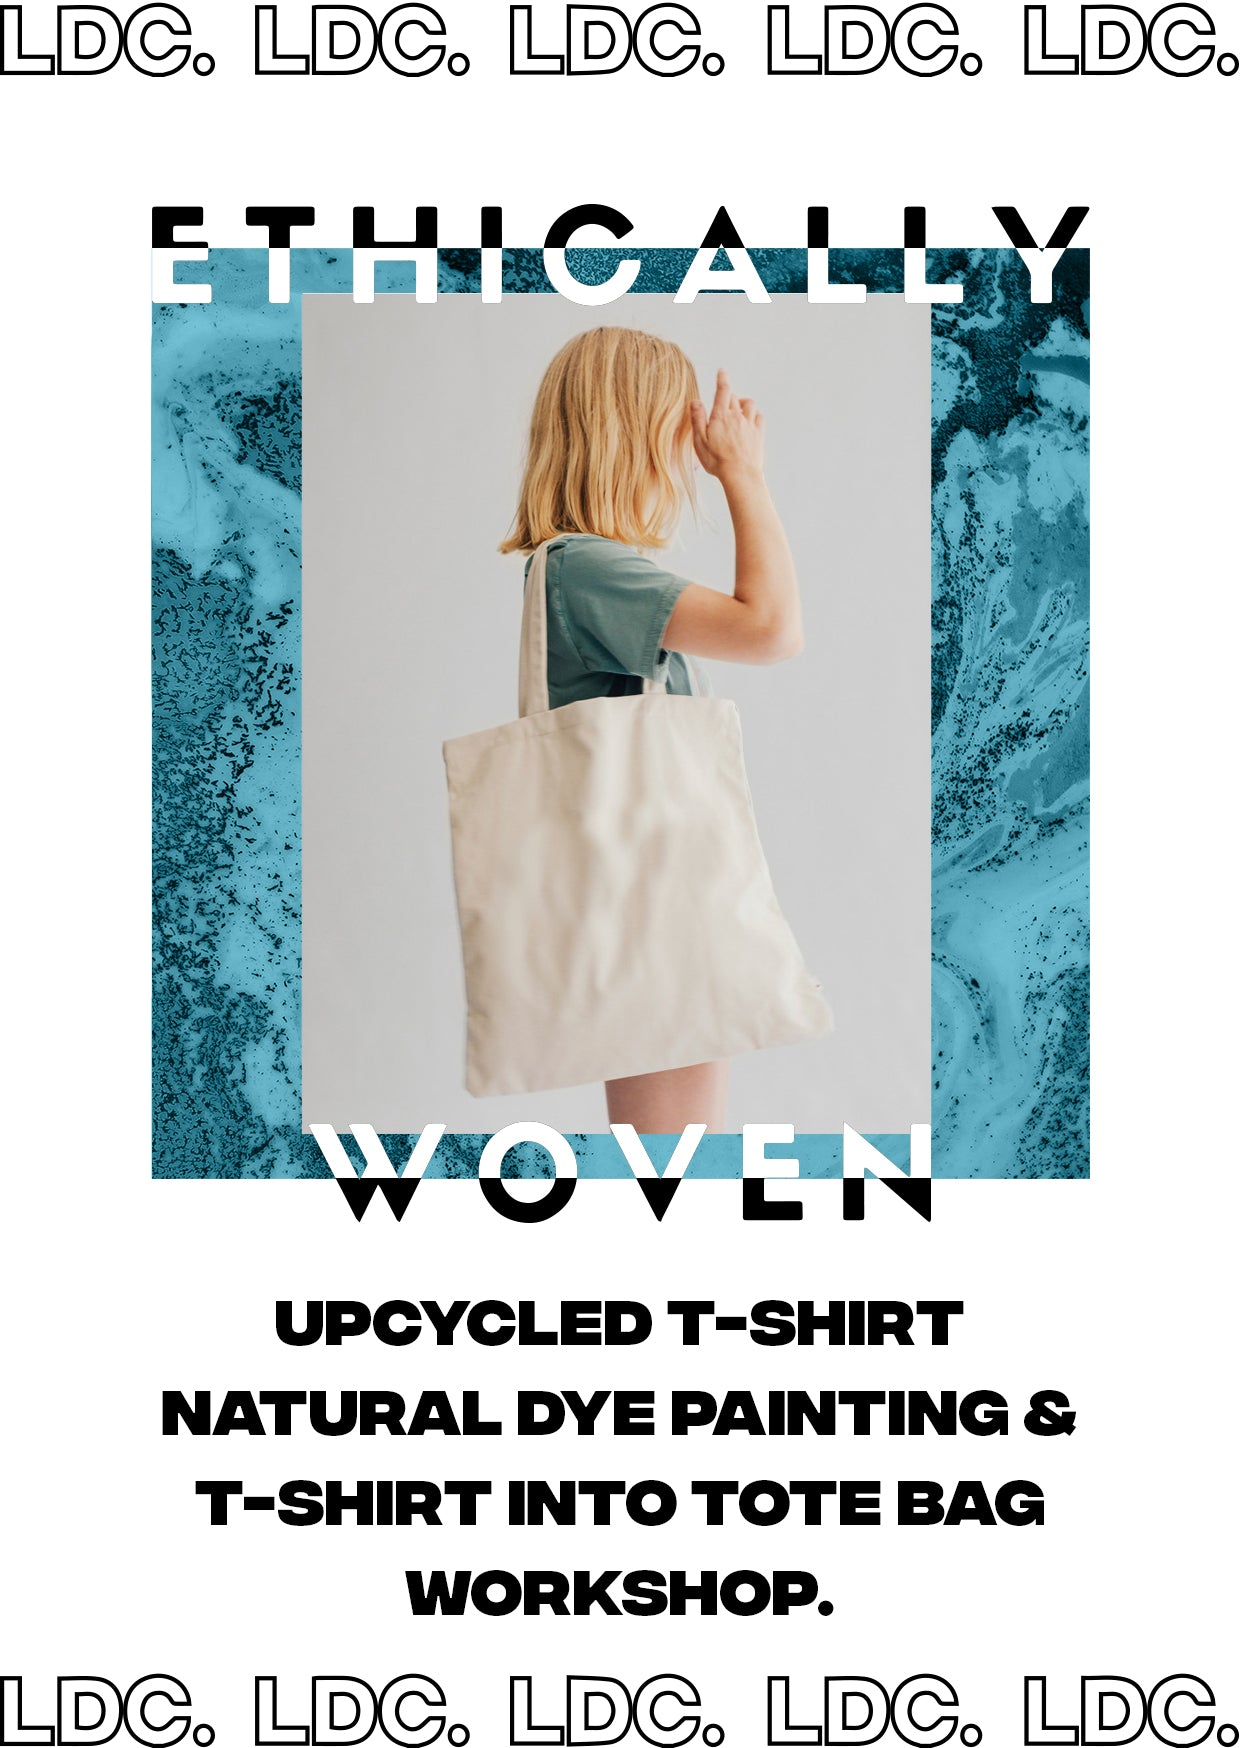 LDC x Ethically Woven: Upcycled Natural Tie-Dye T-Shirt Workshop, 18/12 @6.30-9pm